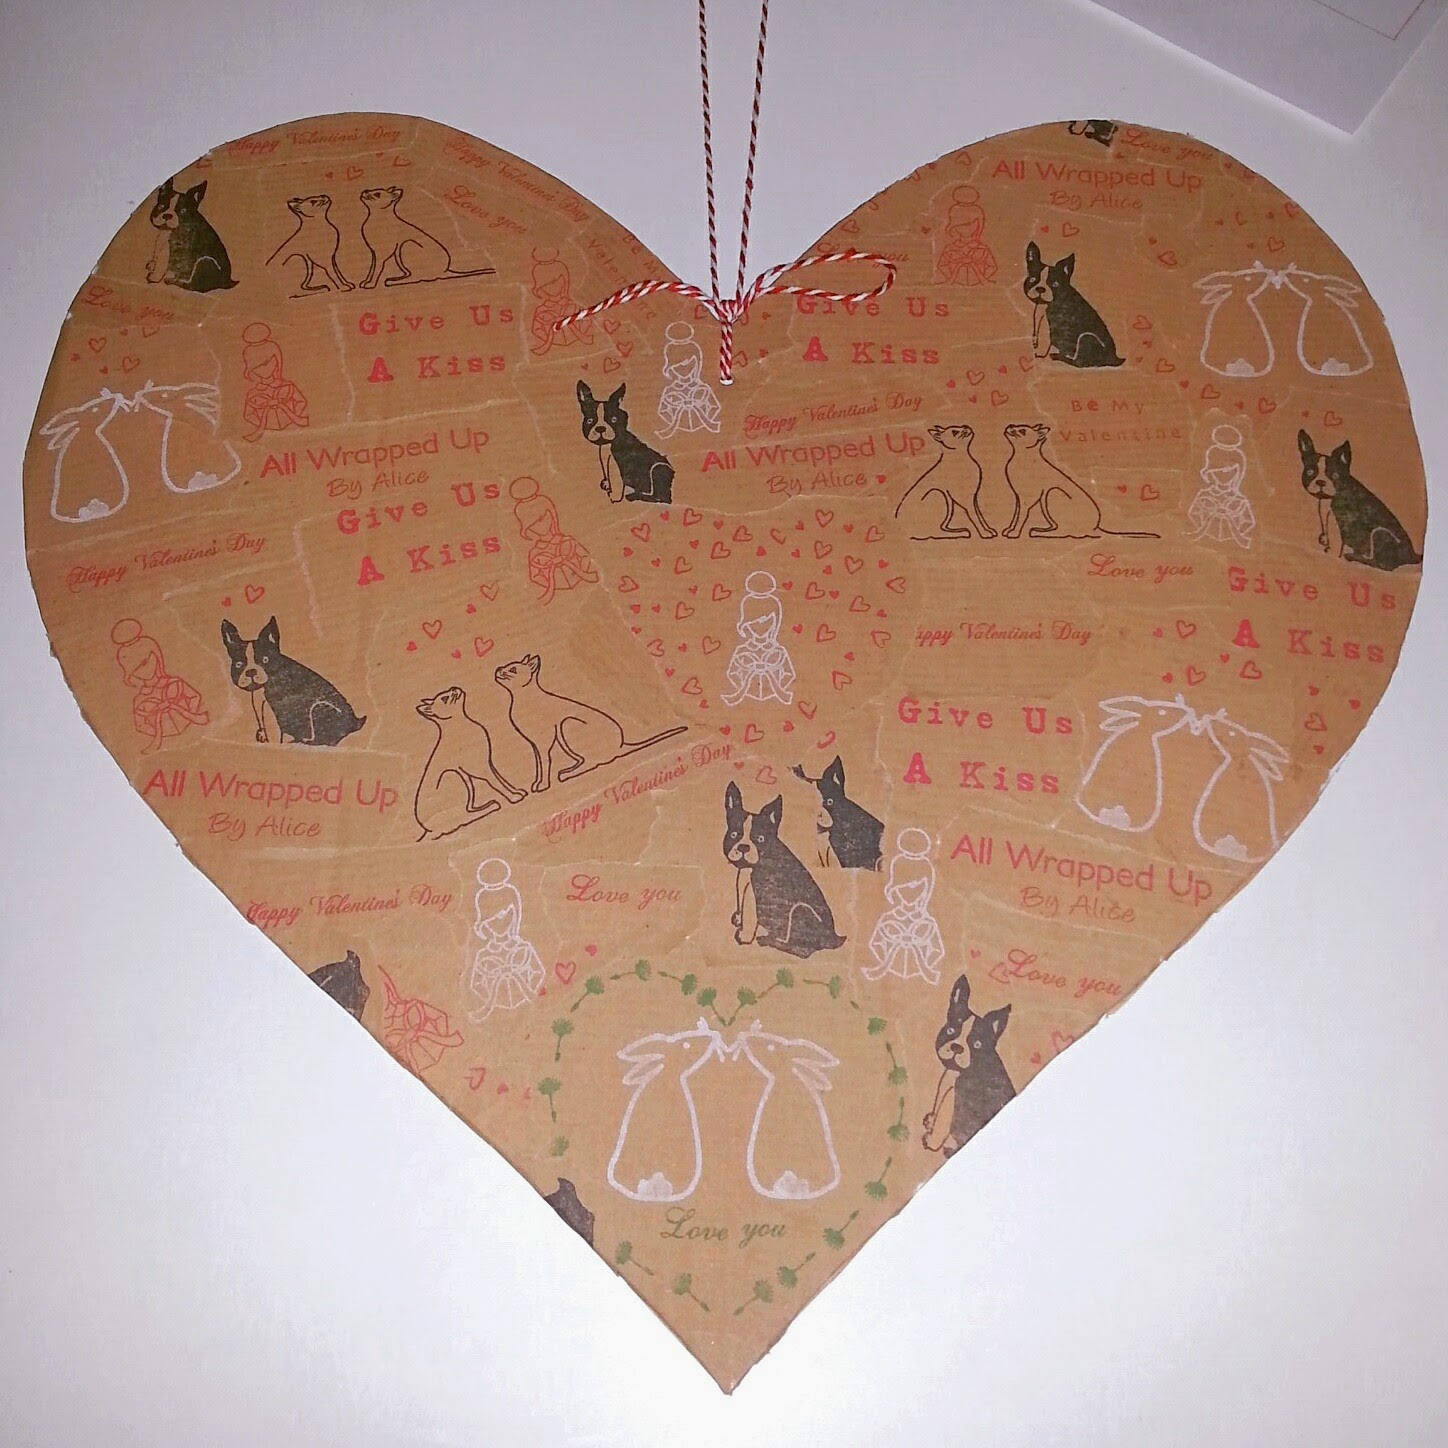 http://www.wrappedbyalice.co.uk/blog/4587767085/DIY-Decoupage-Heart/9393860